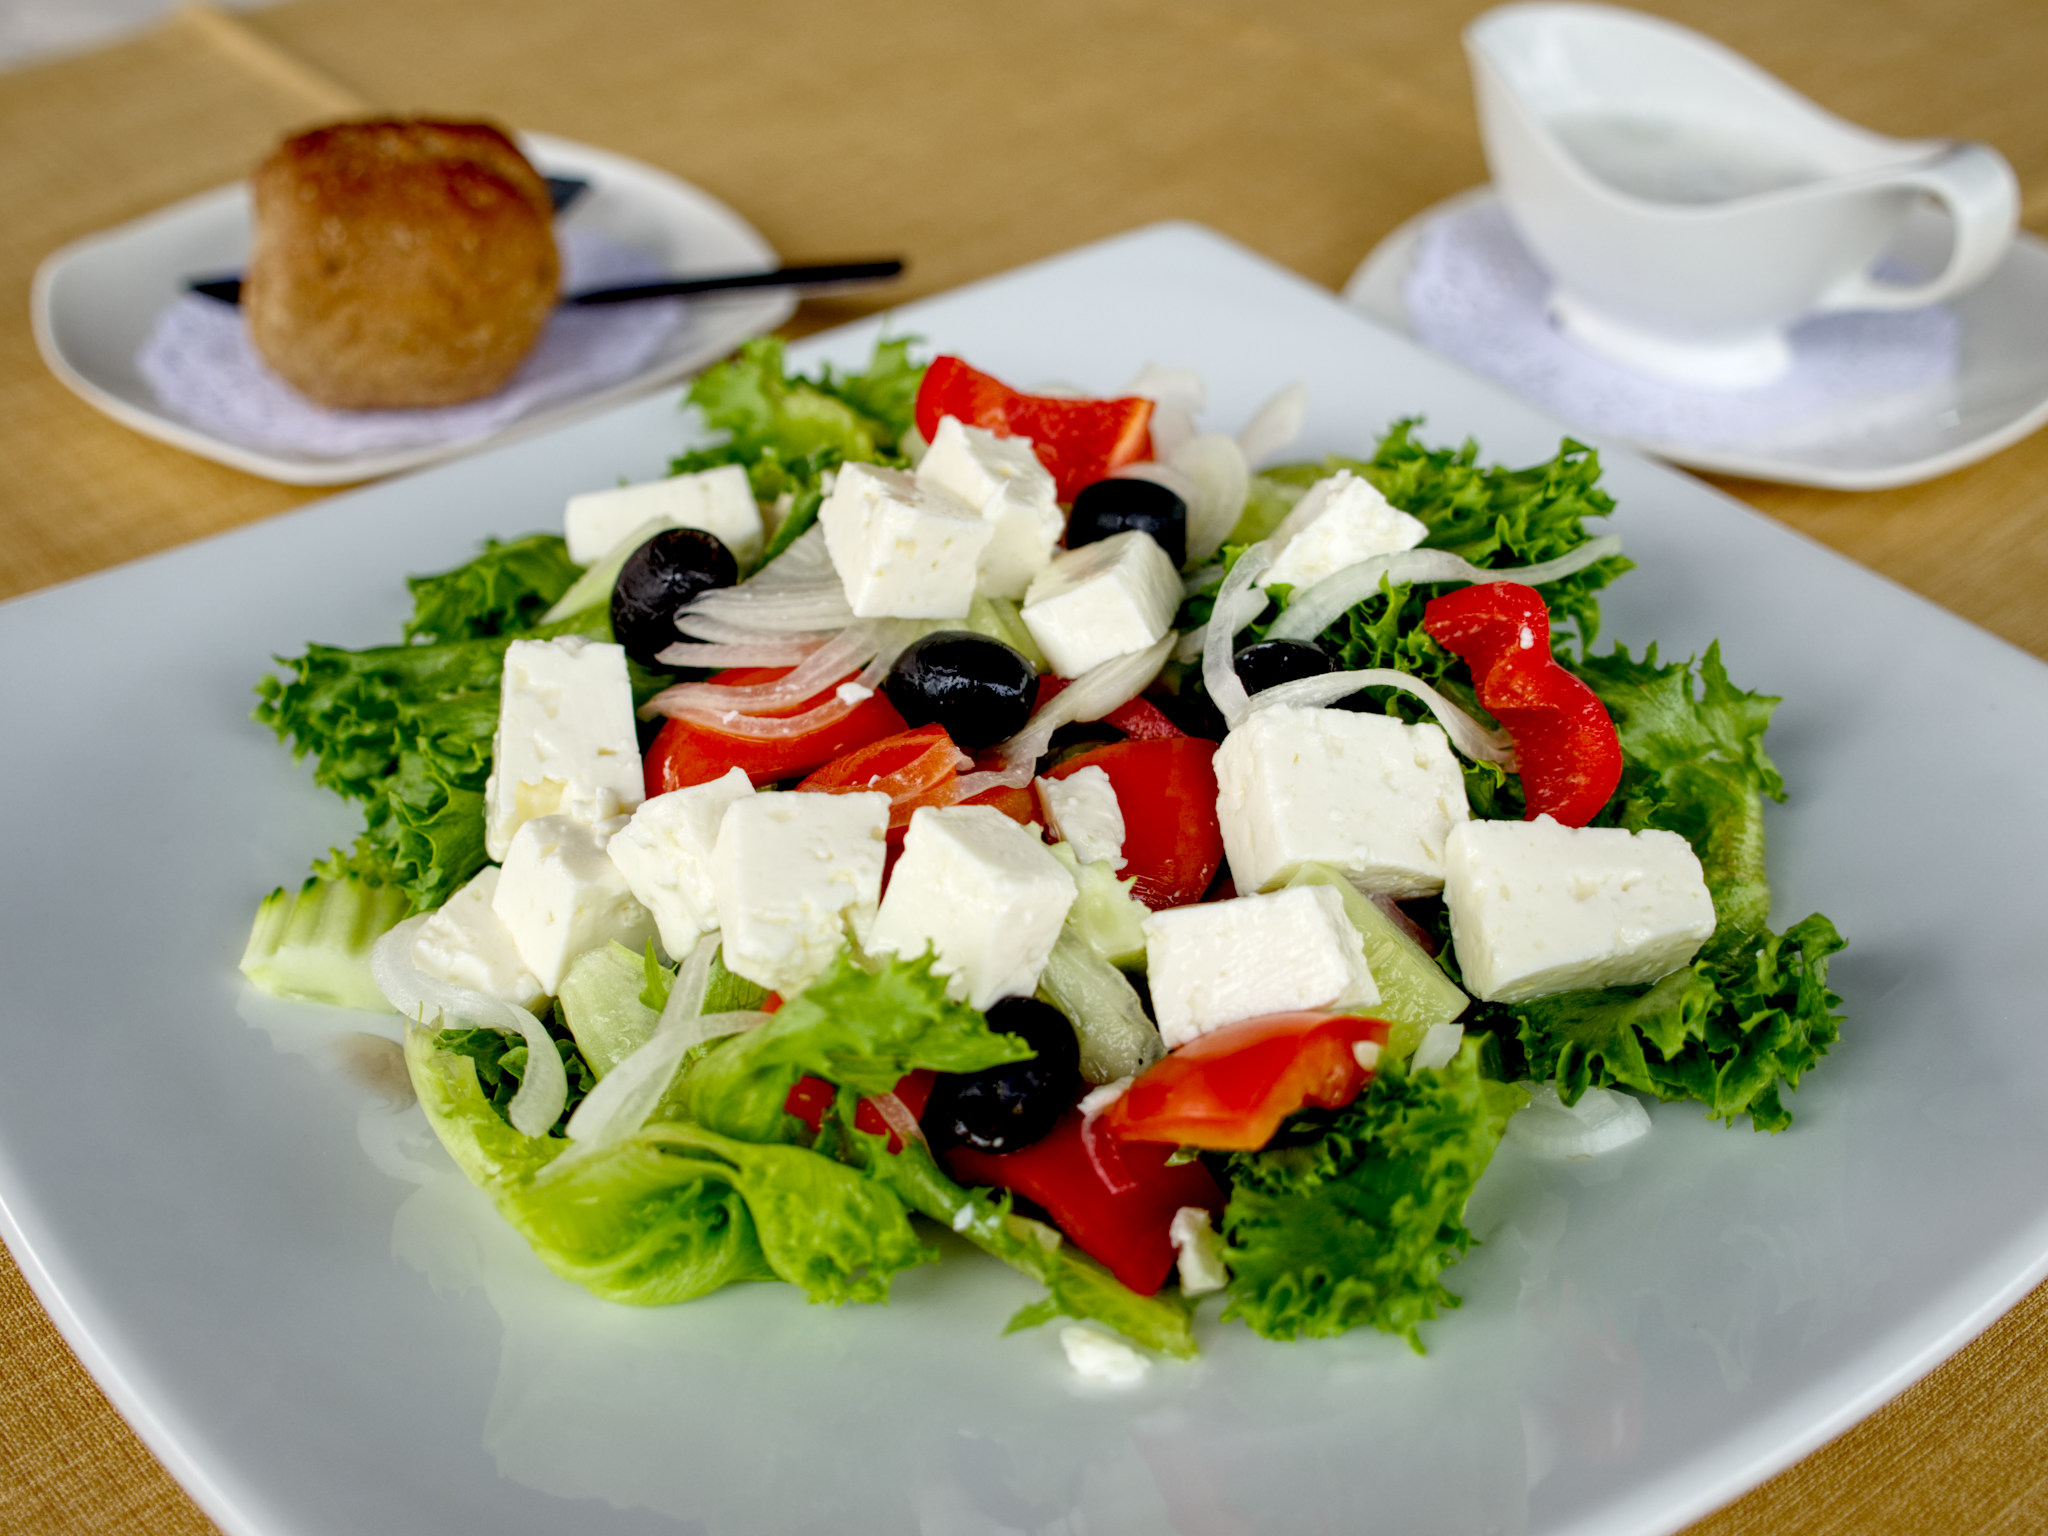 greek salad with bread and dresssing